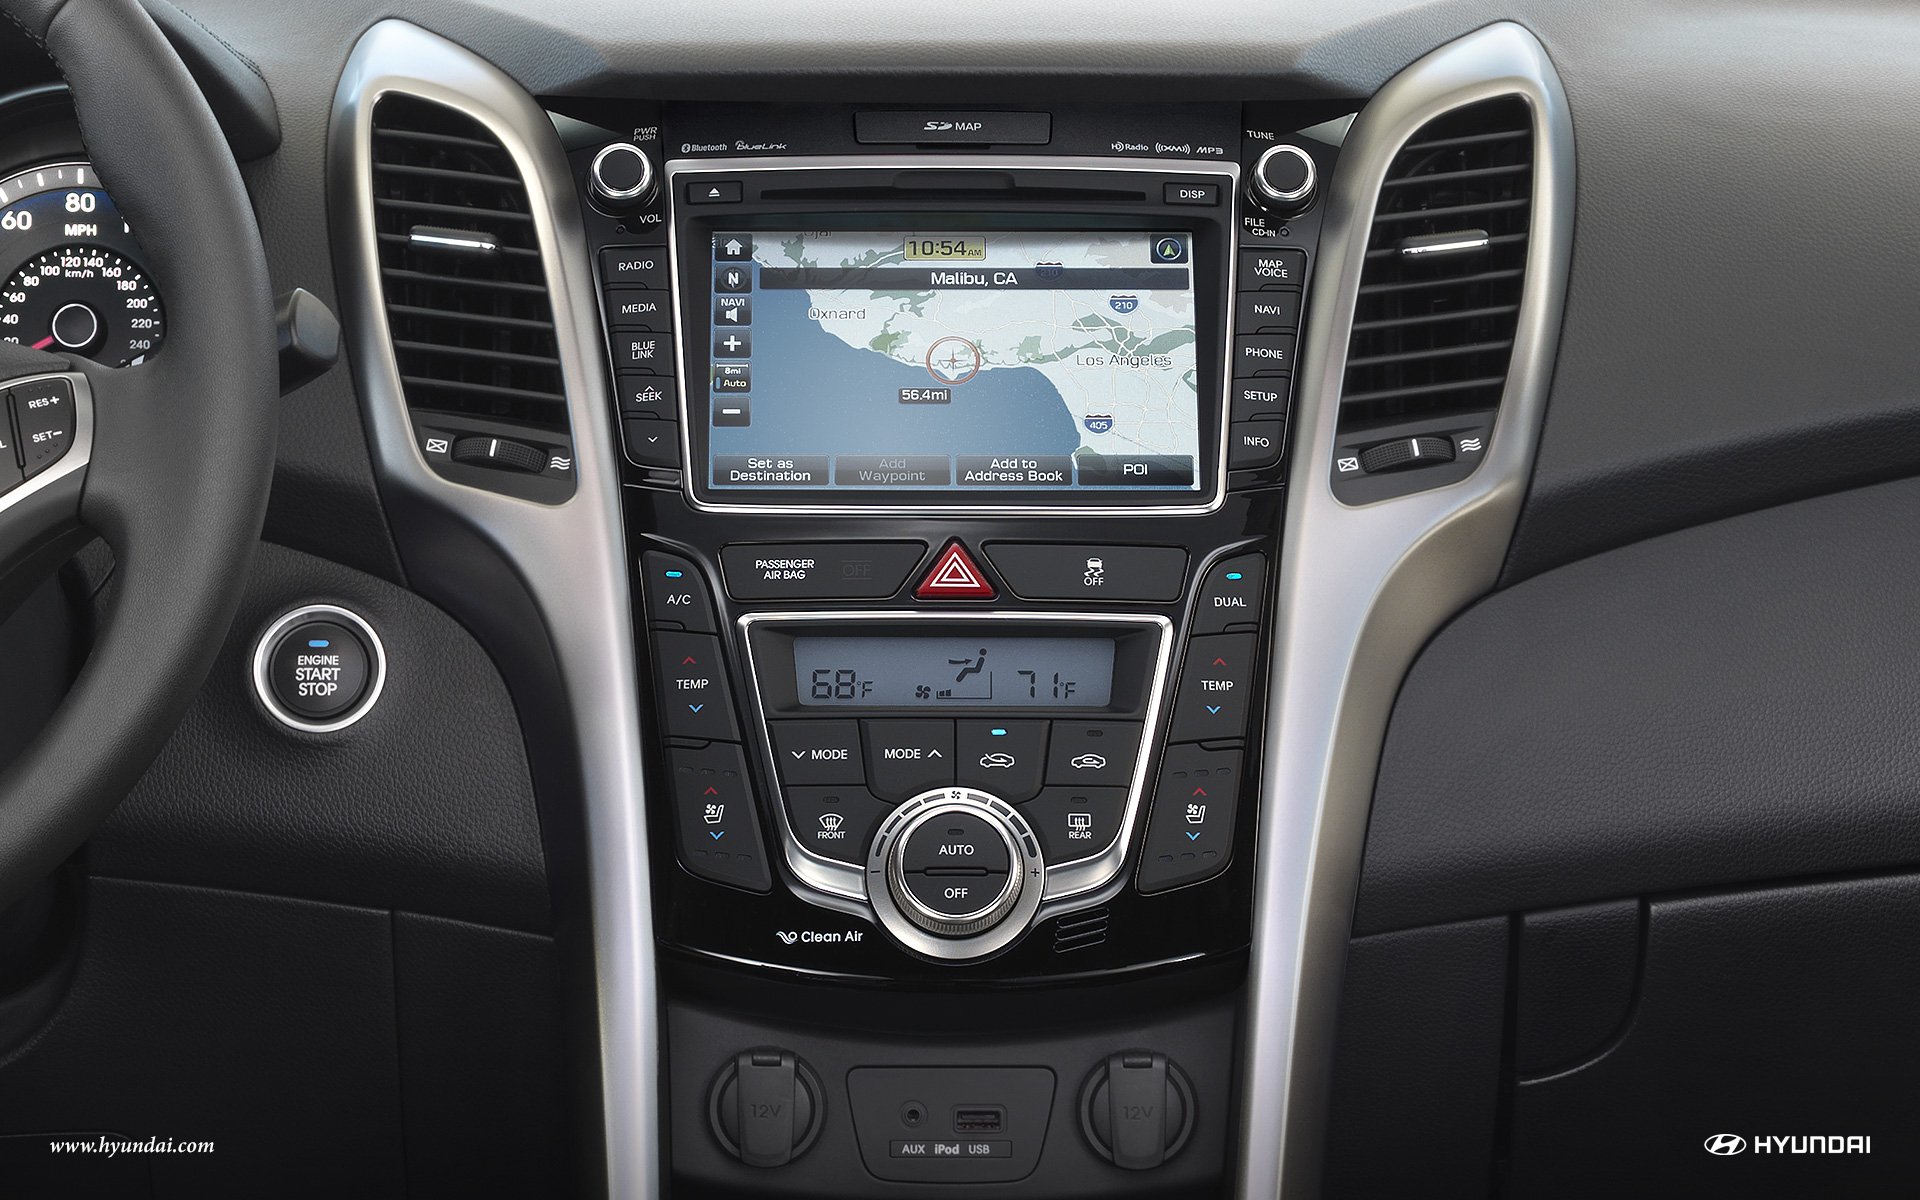 2016 hyundai sonata navigation system manual